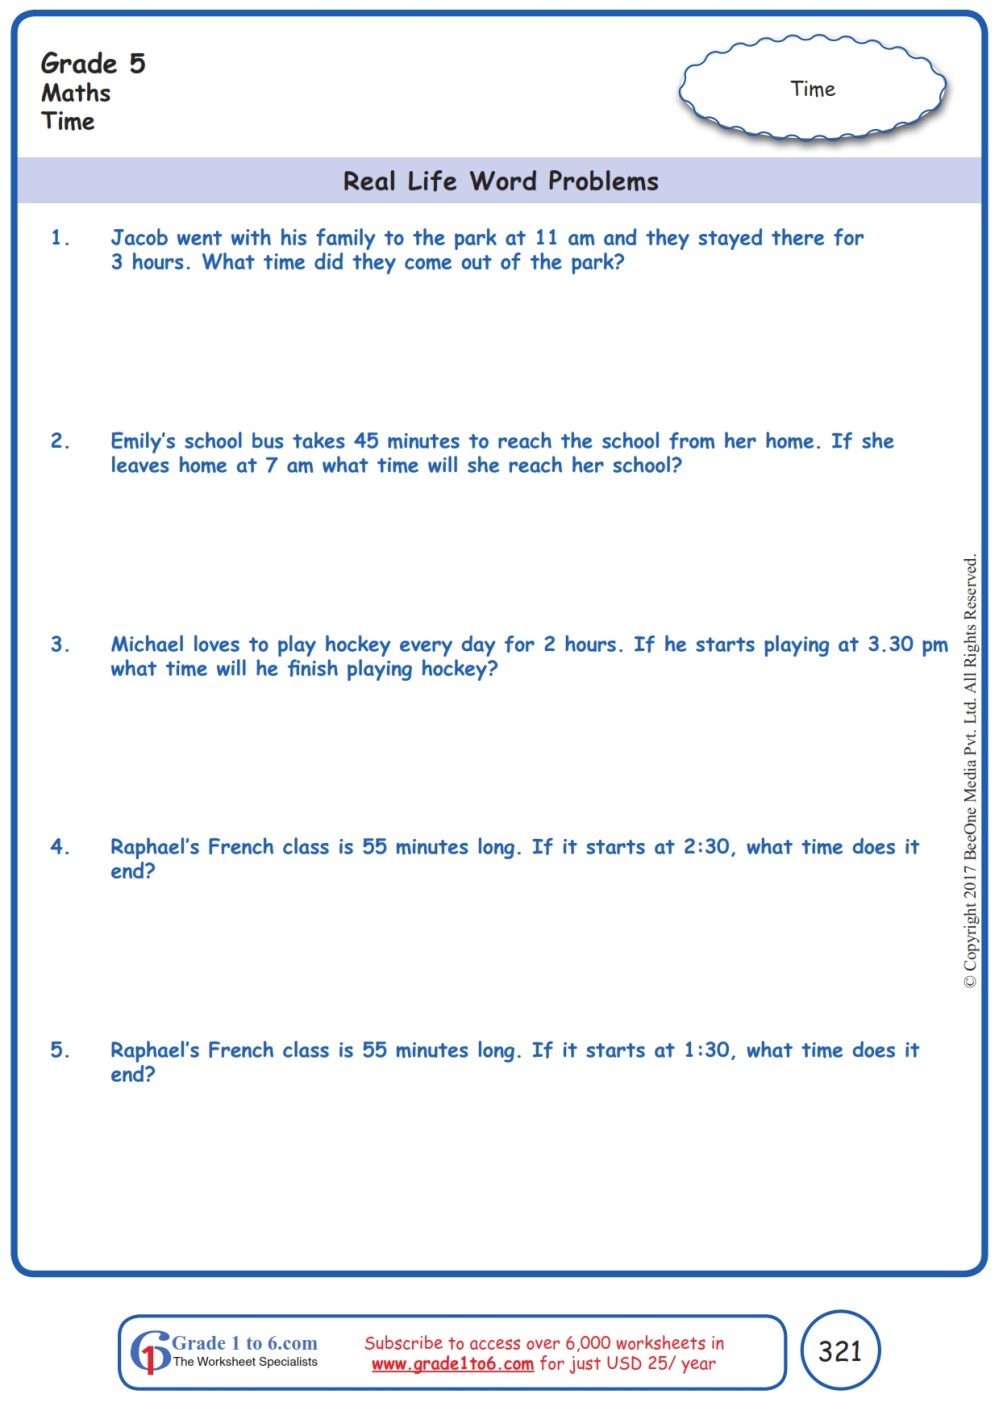 medium resolution of Grade 5 Word Problems in Time Worksheets www.grade1to6.com